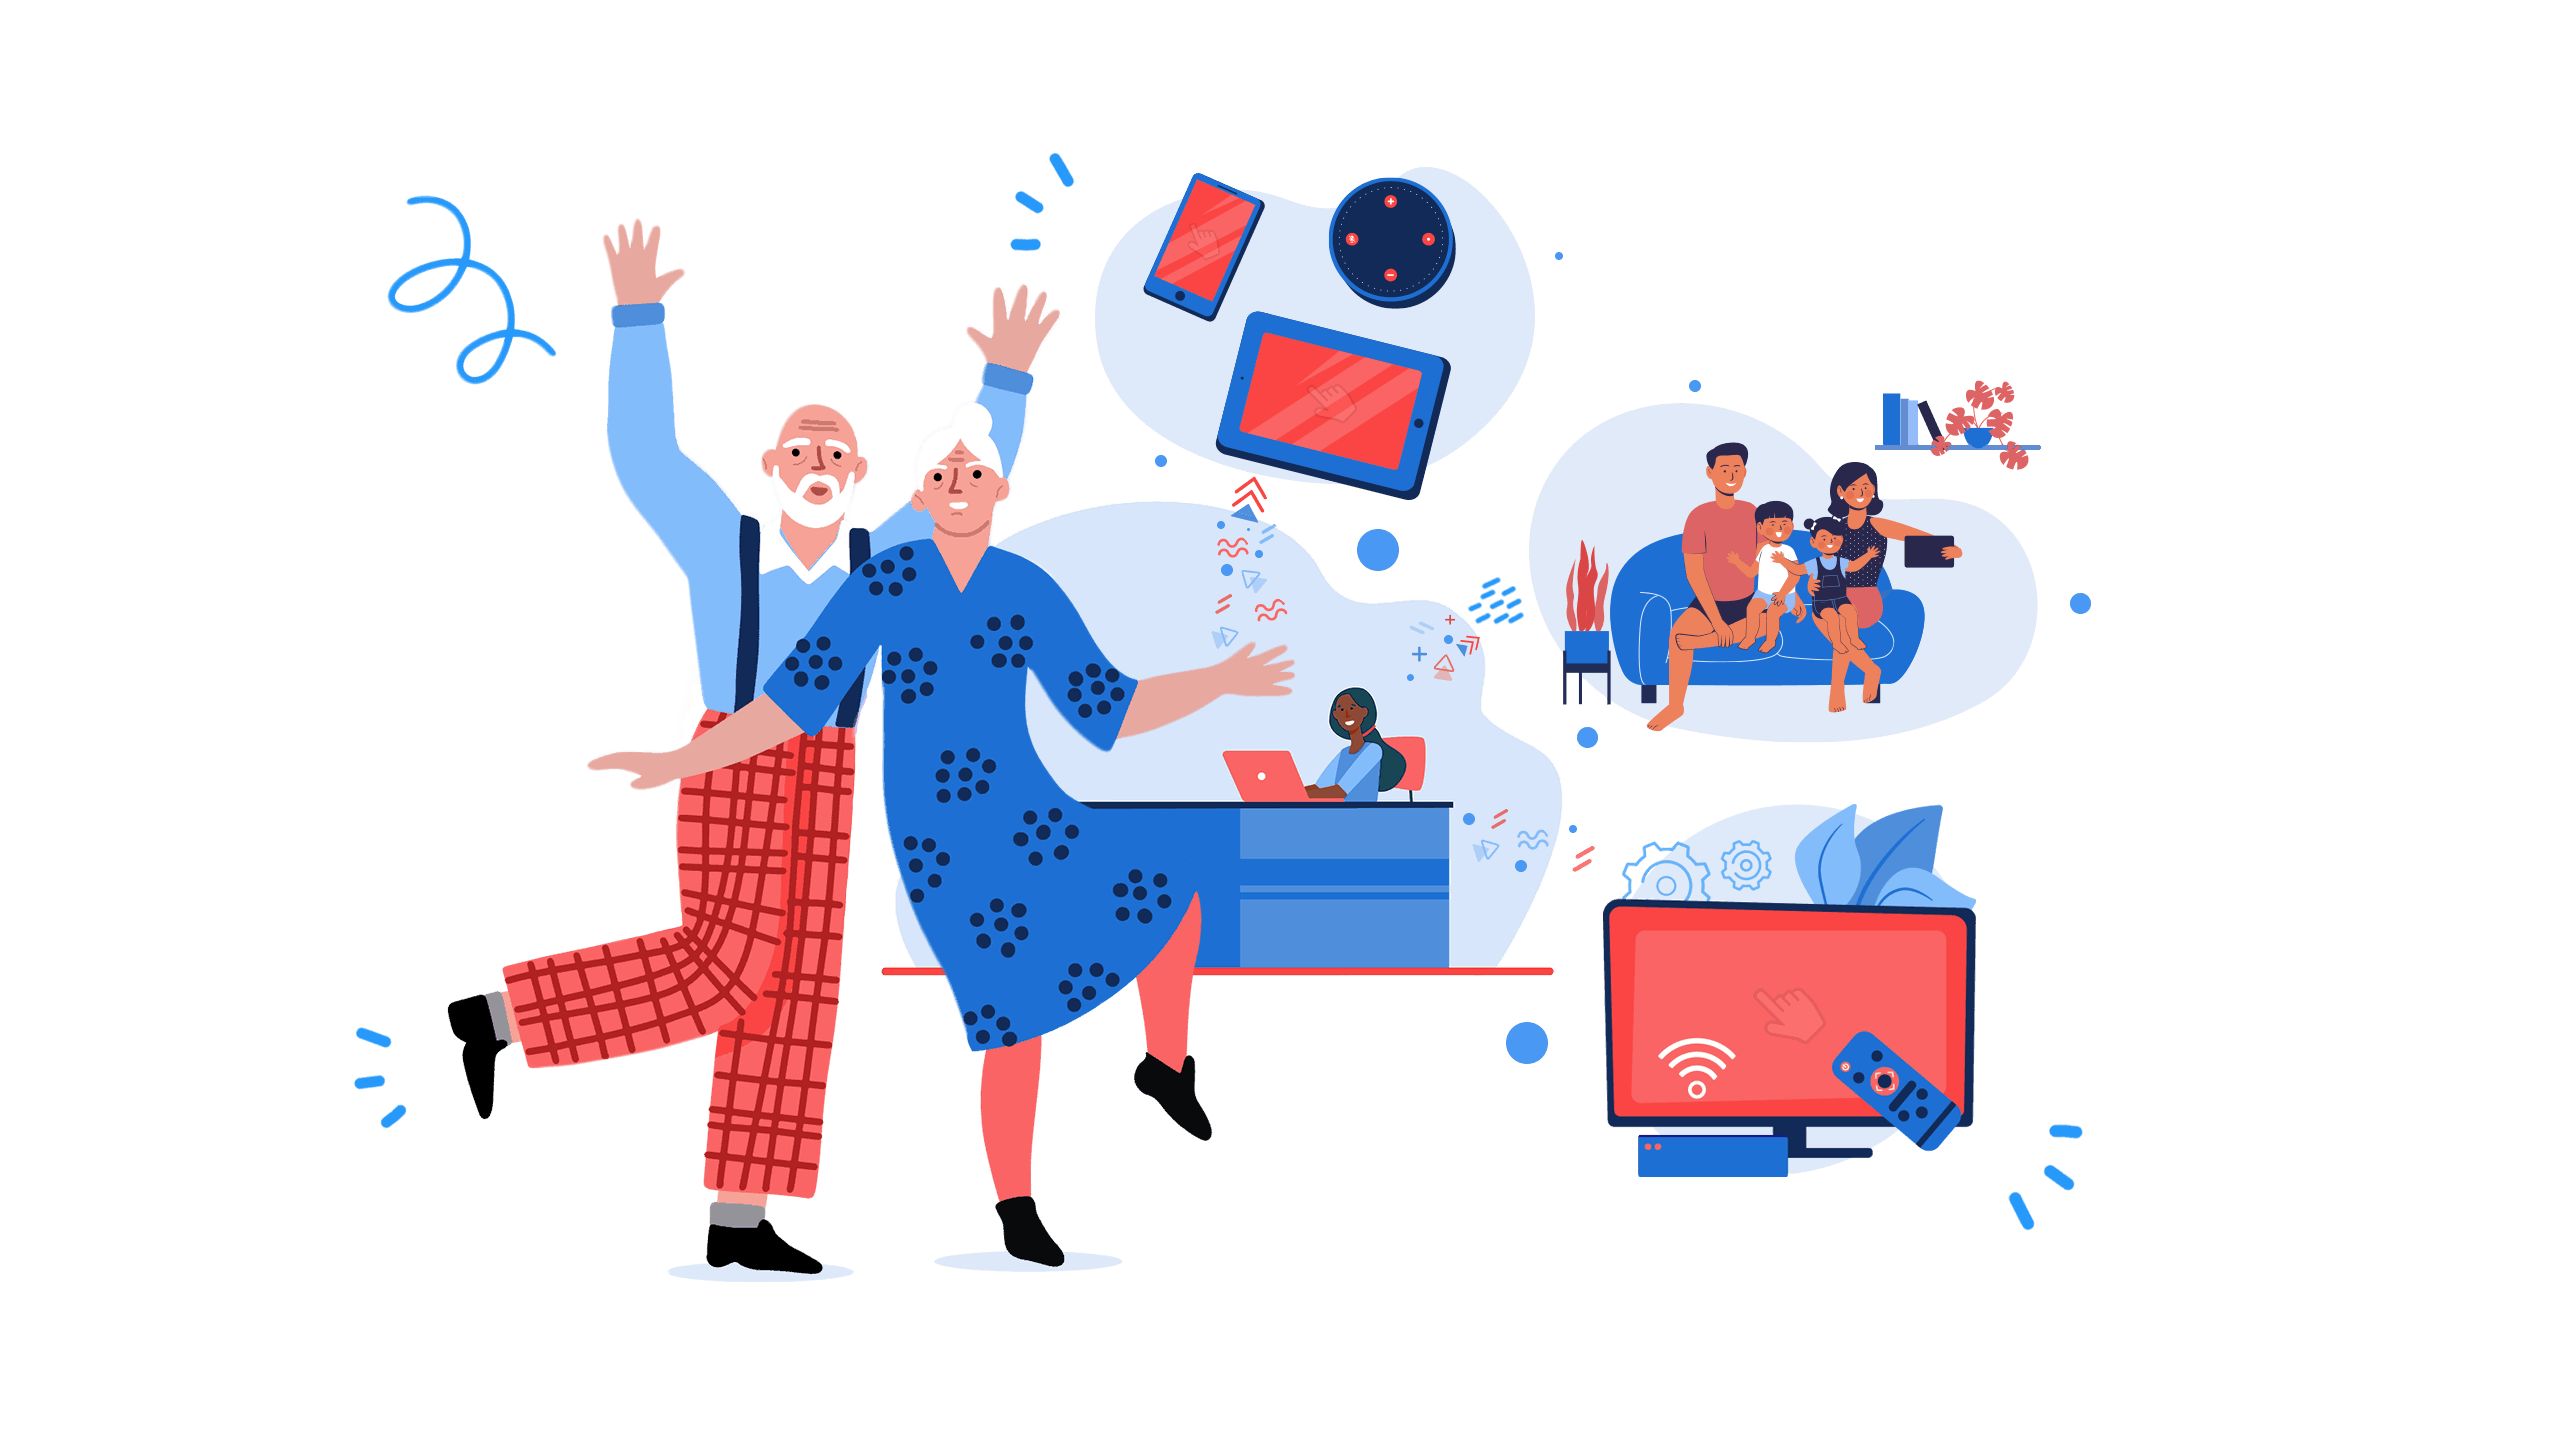 Illustration of InTouchLink's cloud based system that connects from admin to family, residents, and the community.